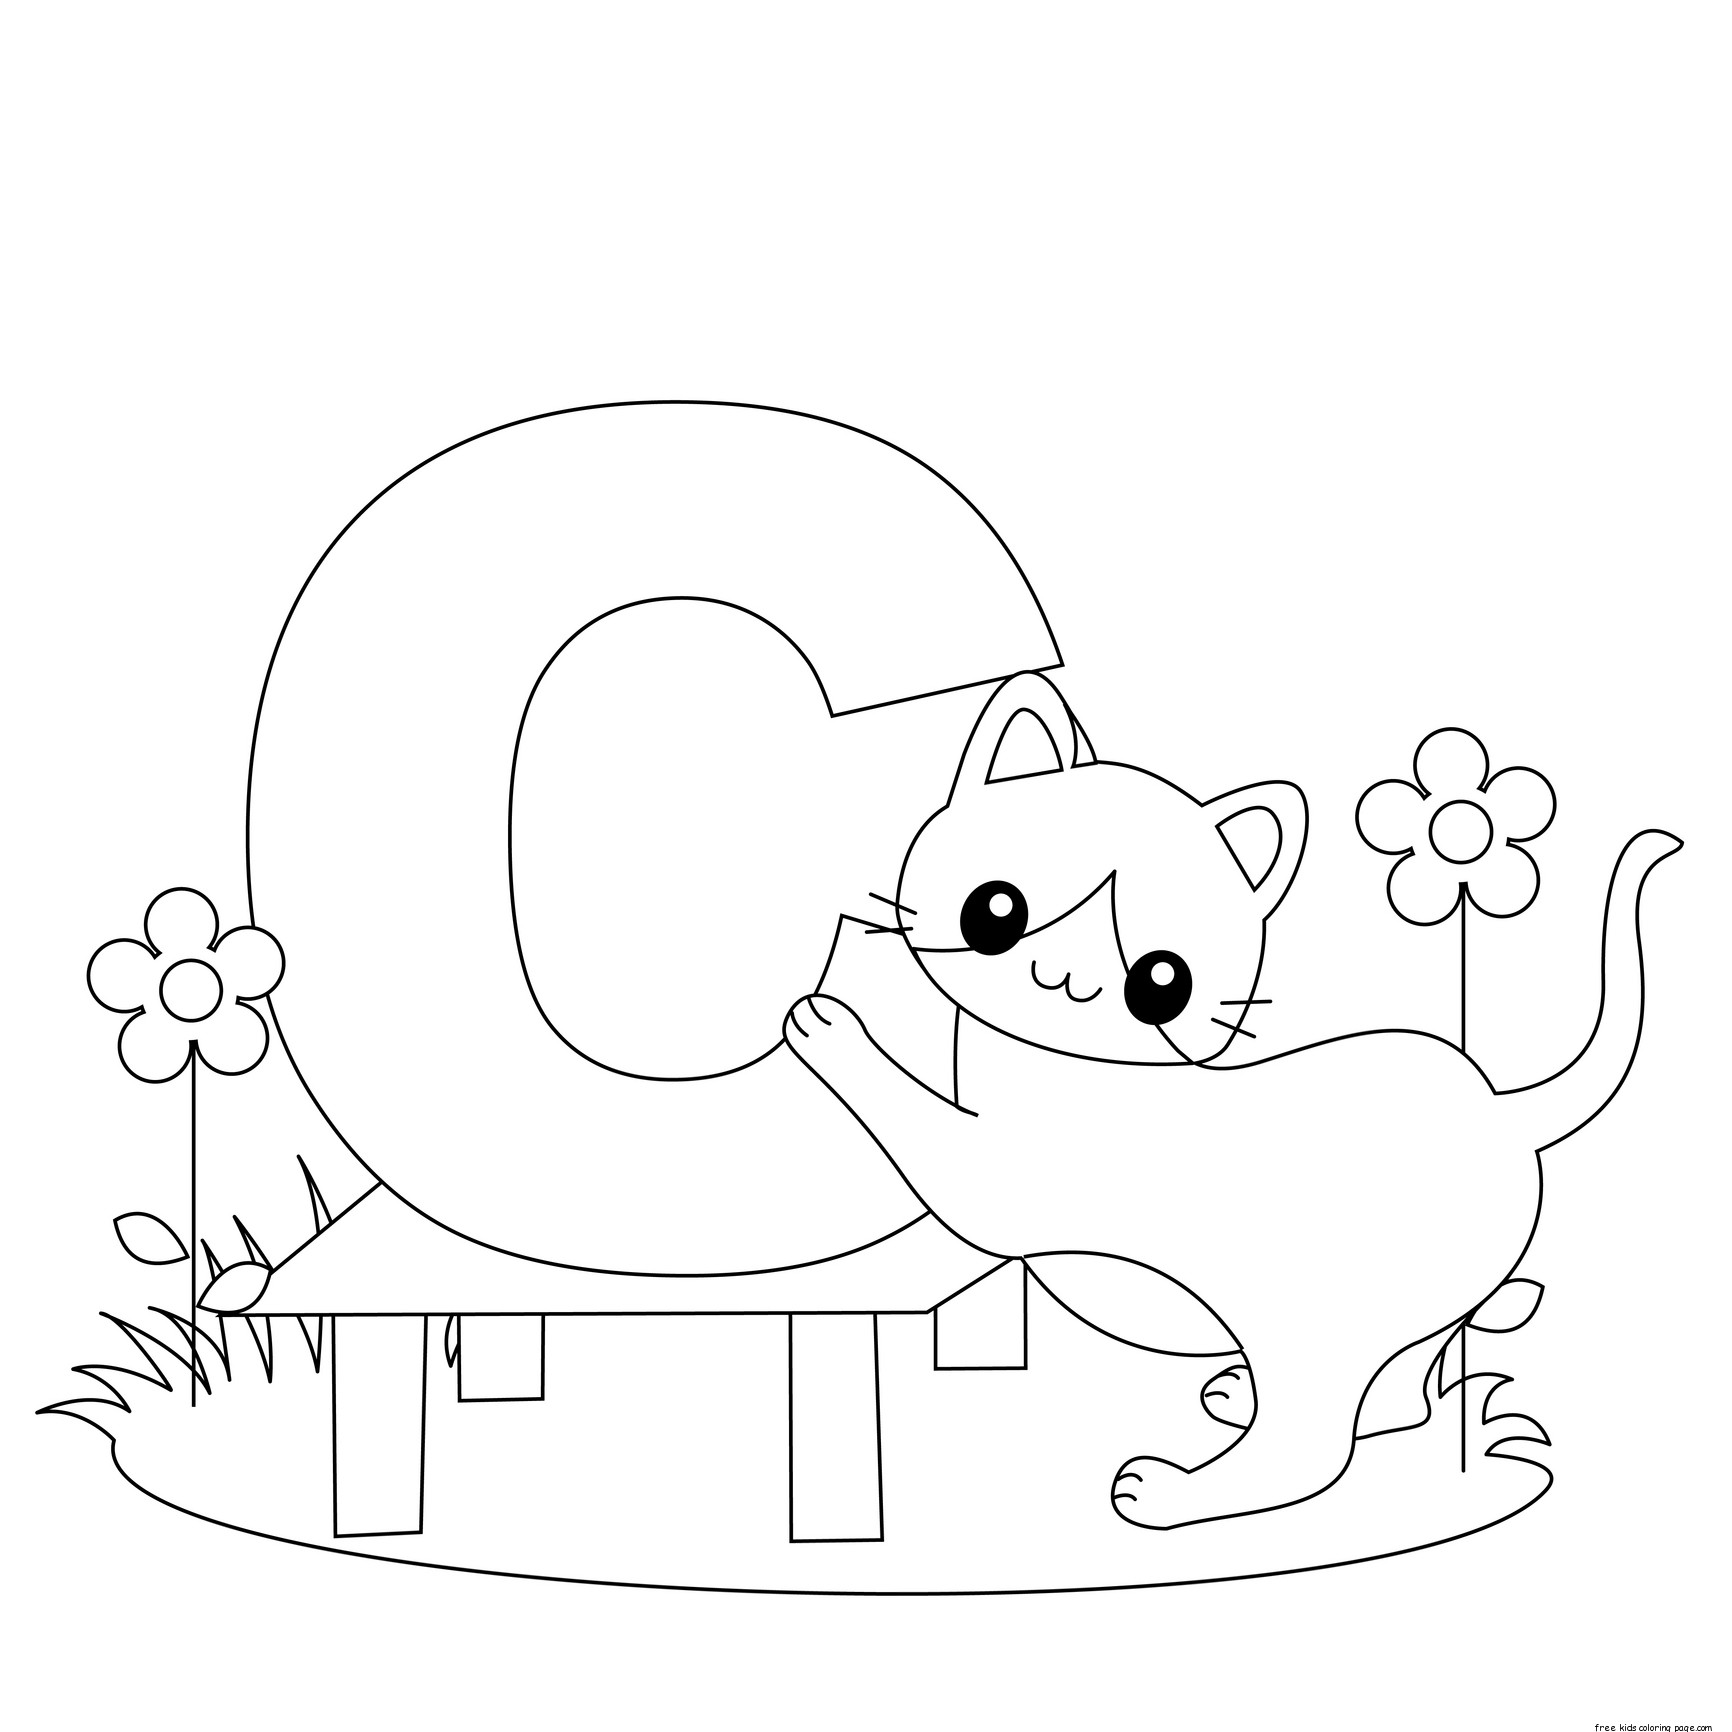 abc coloring pages for kids - printable alphabet worksheets letter c for cat for